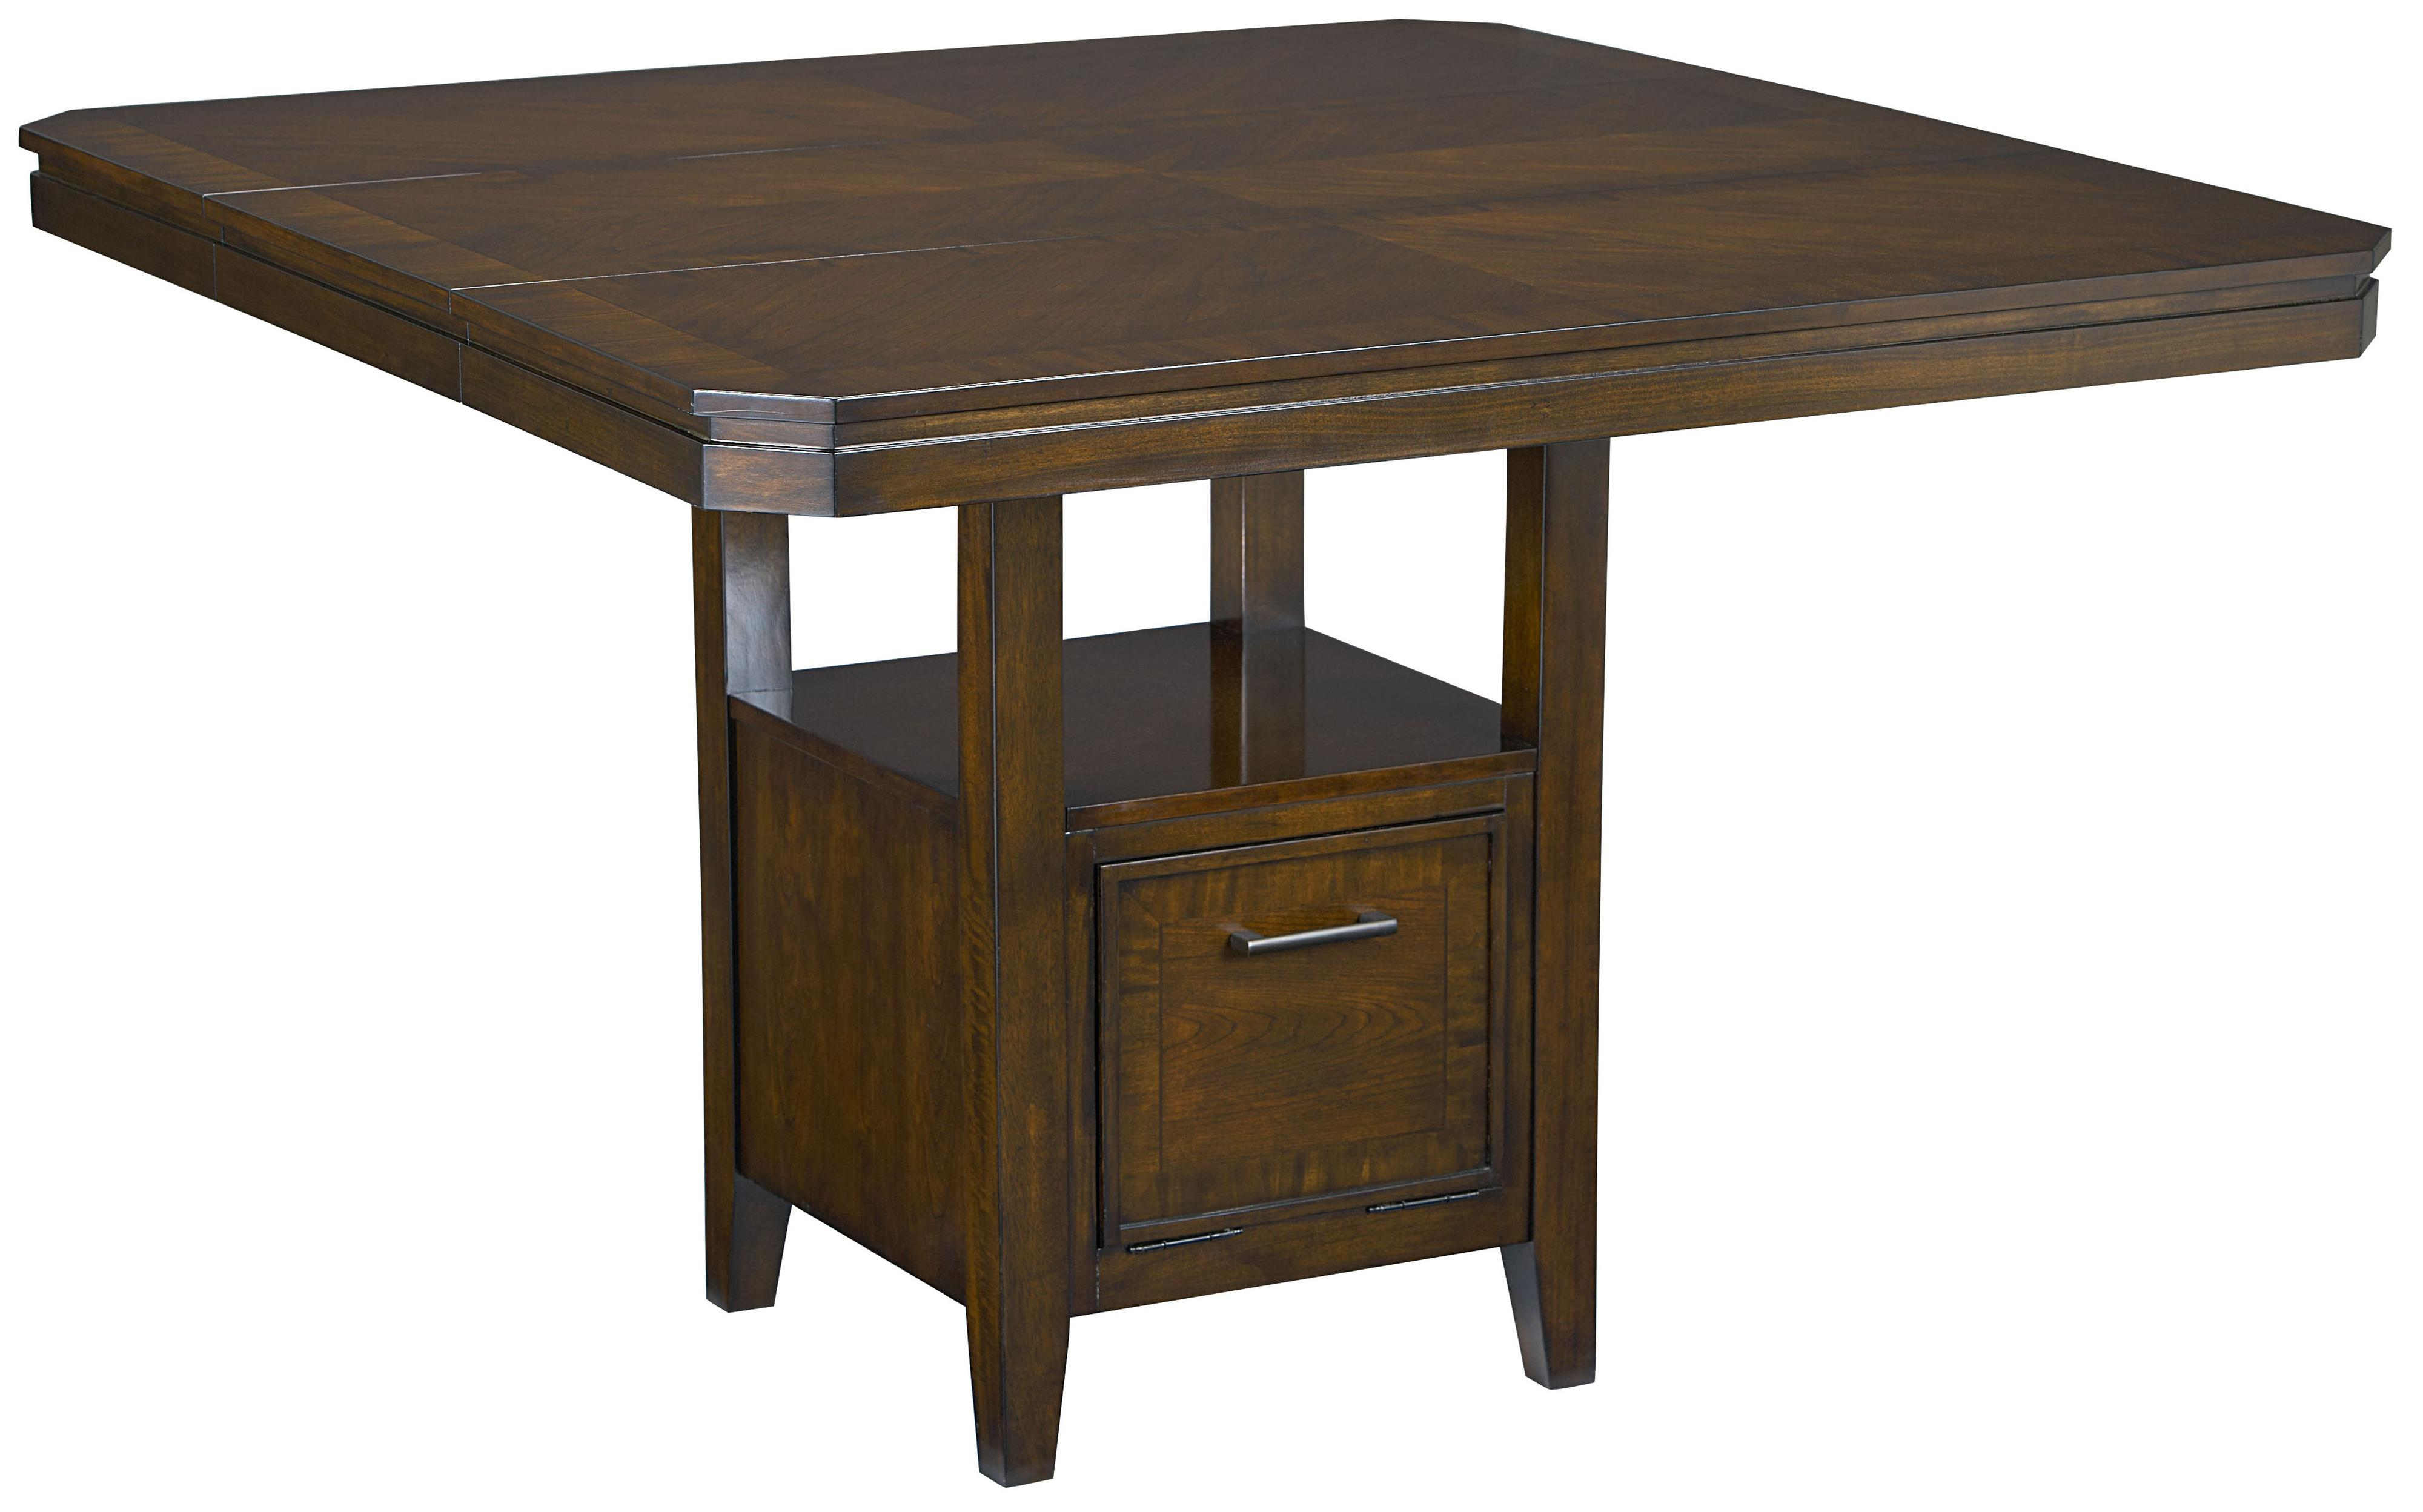 extendable dining furniture height farmhouse counter laurel modern wayfair tables pdx hillary rectangular reviews table foundry